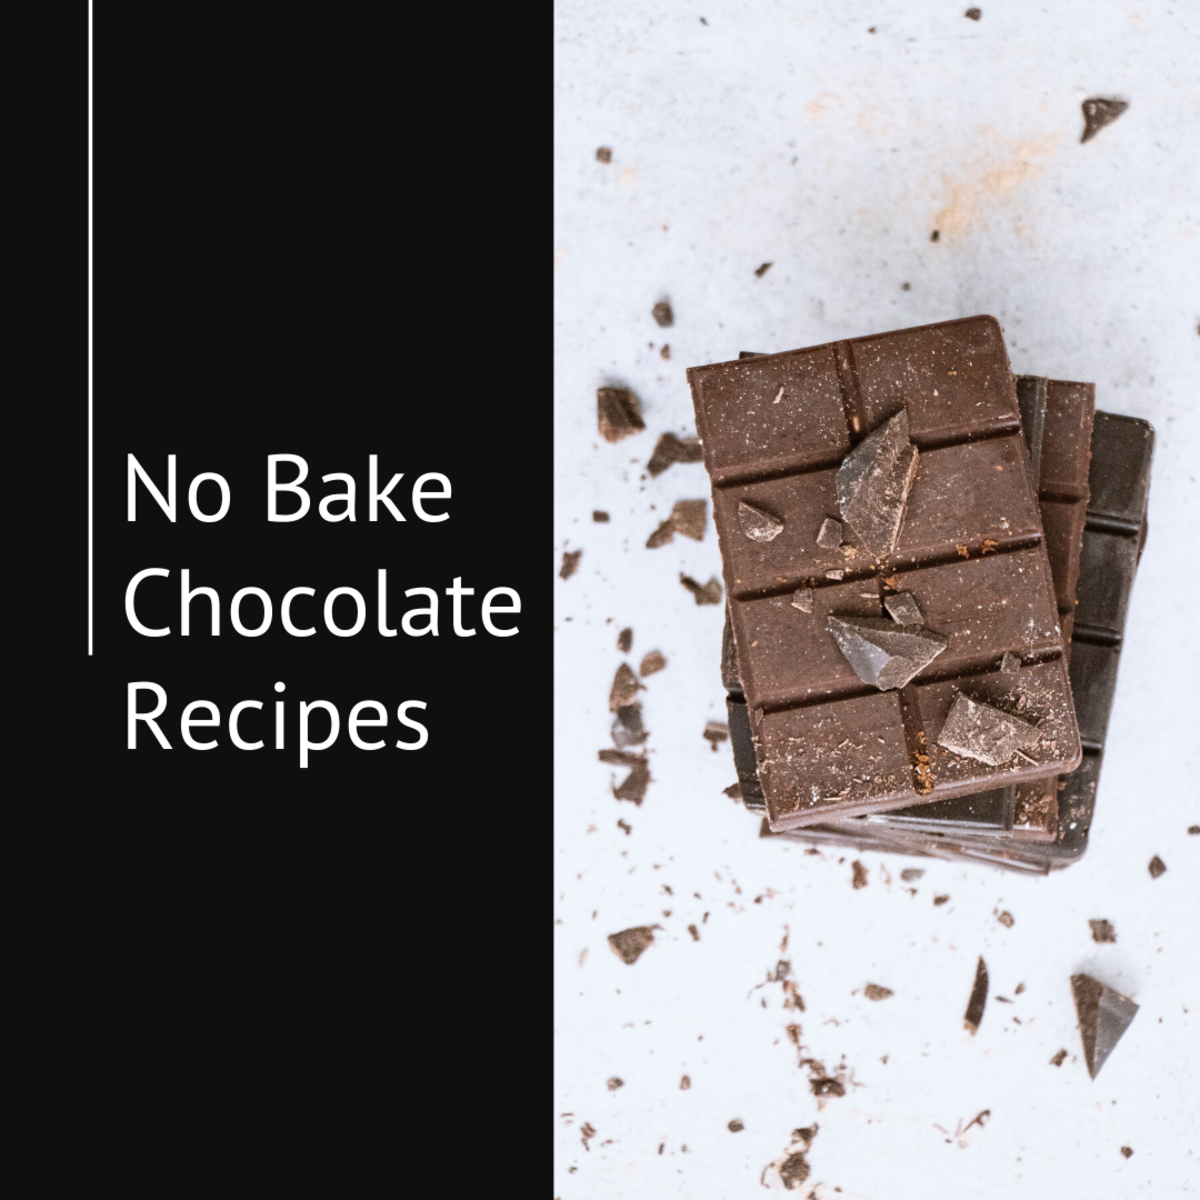 These chocolate recipes are great for the whole family.